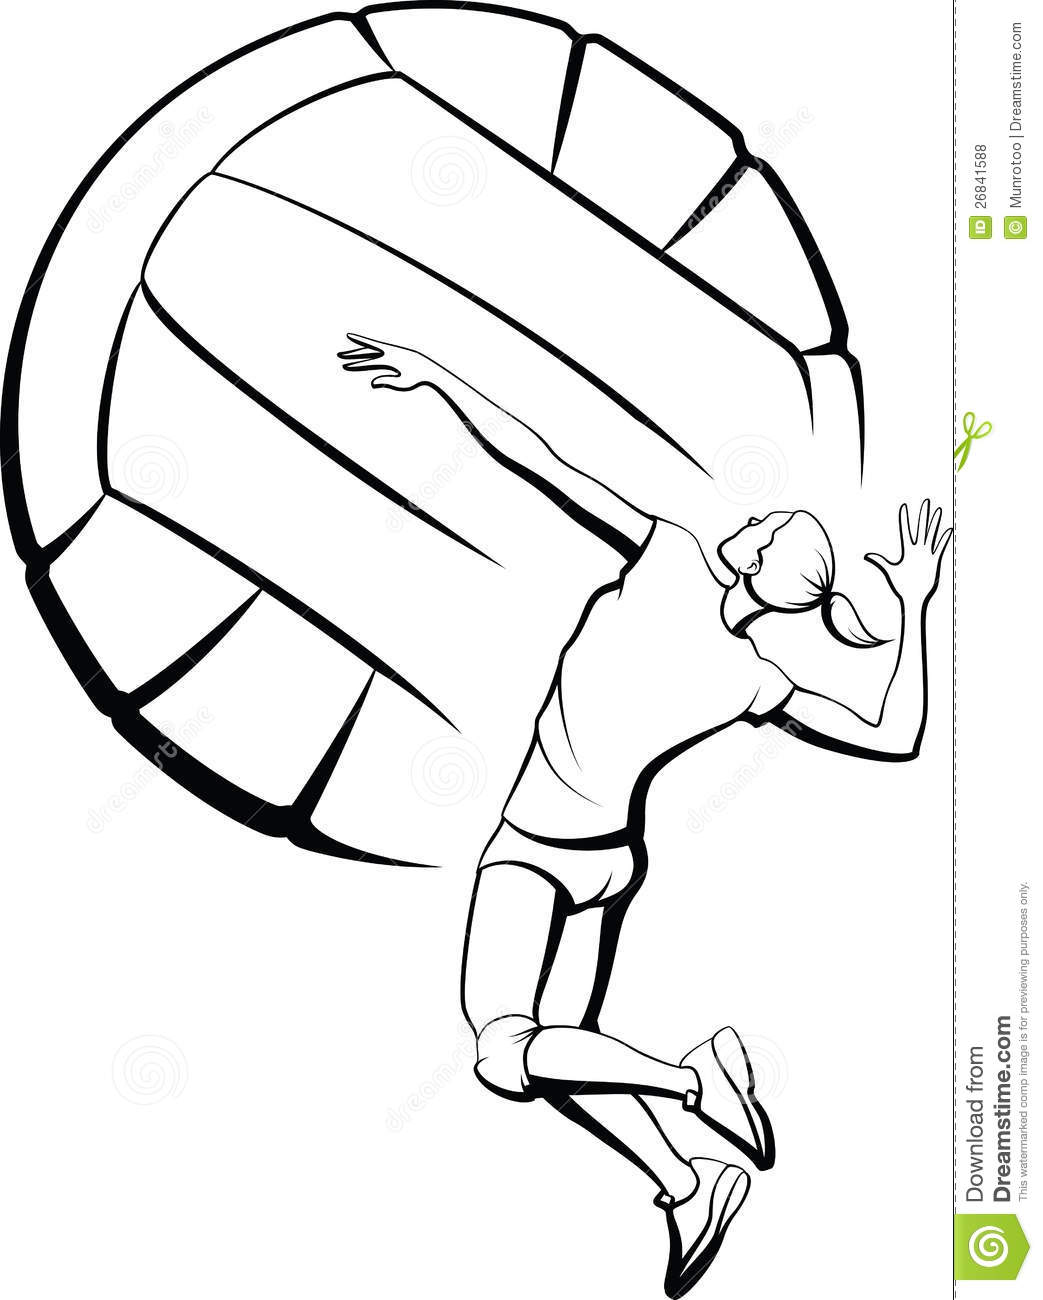 Volleyball Girl Spiking Royalty Free Stock Photos